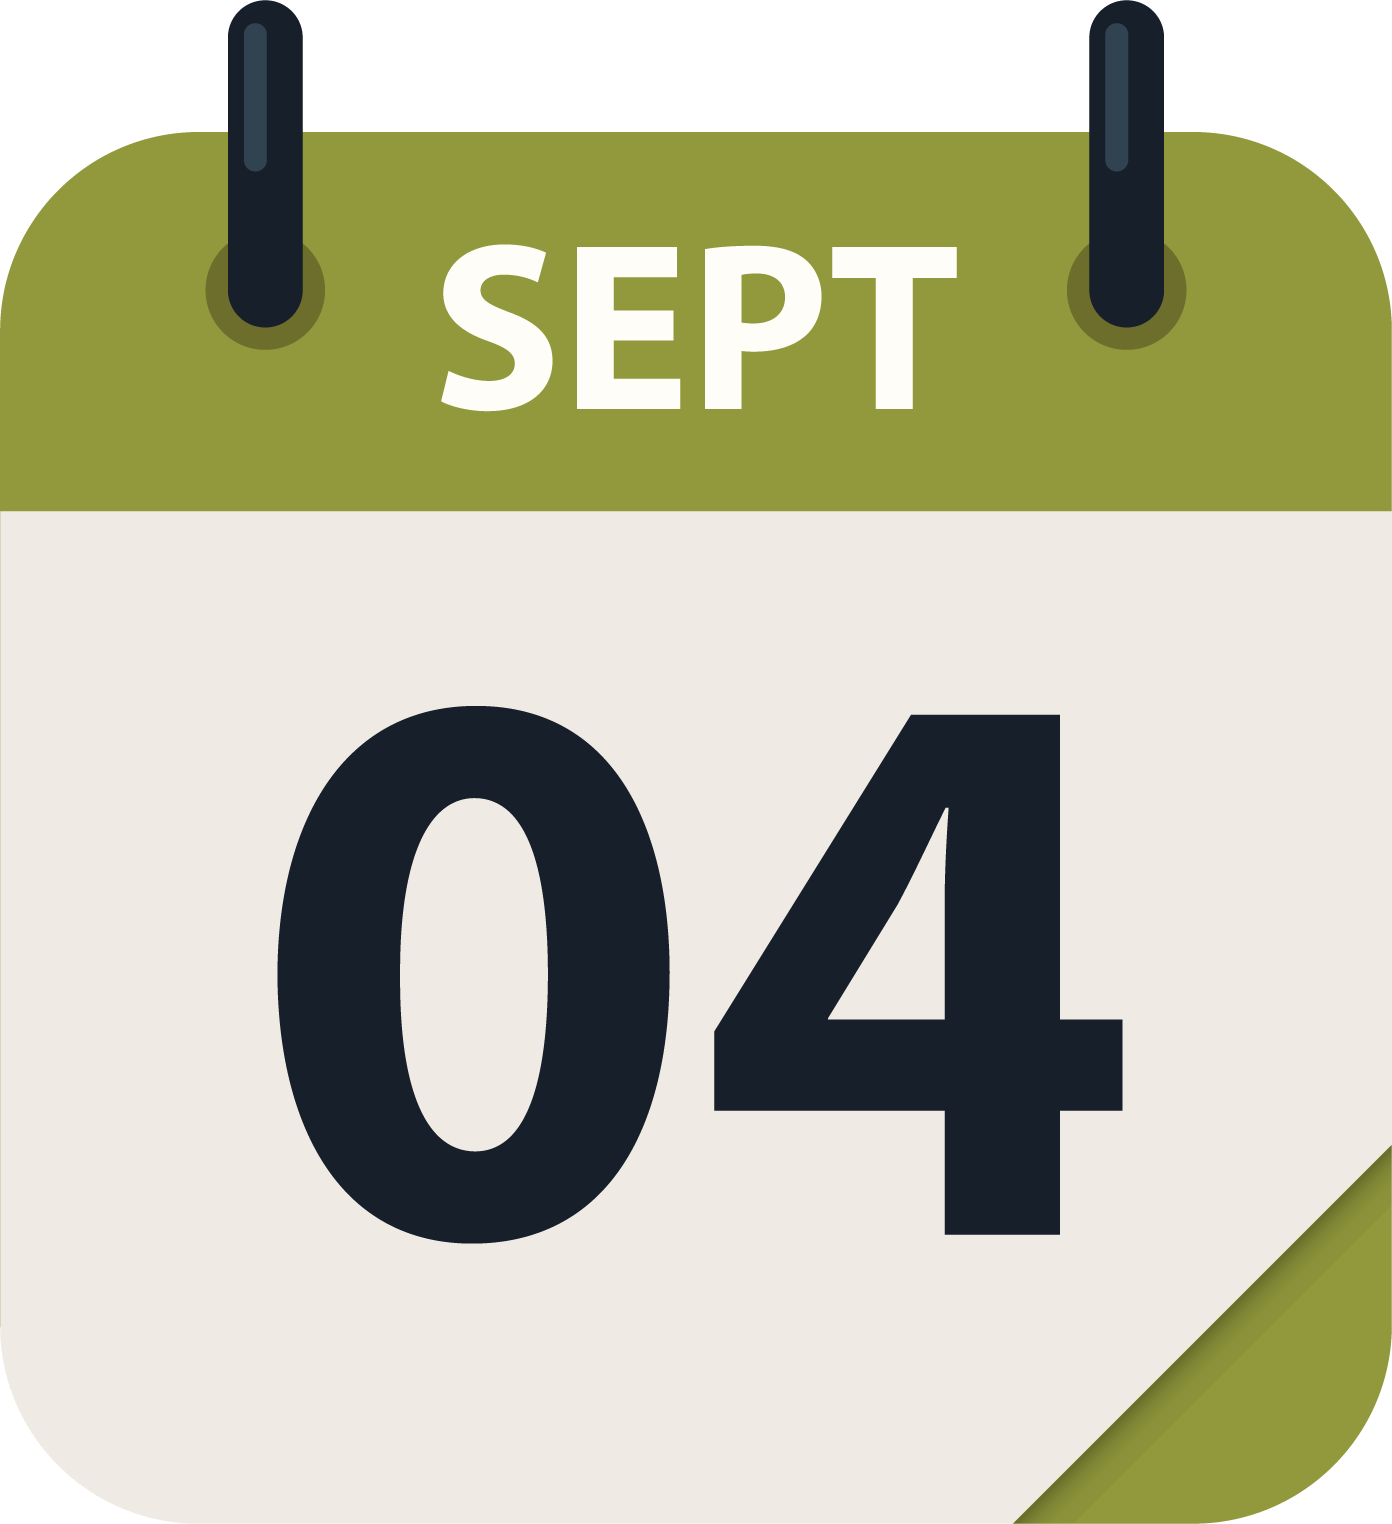 Sept 4 cal icon